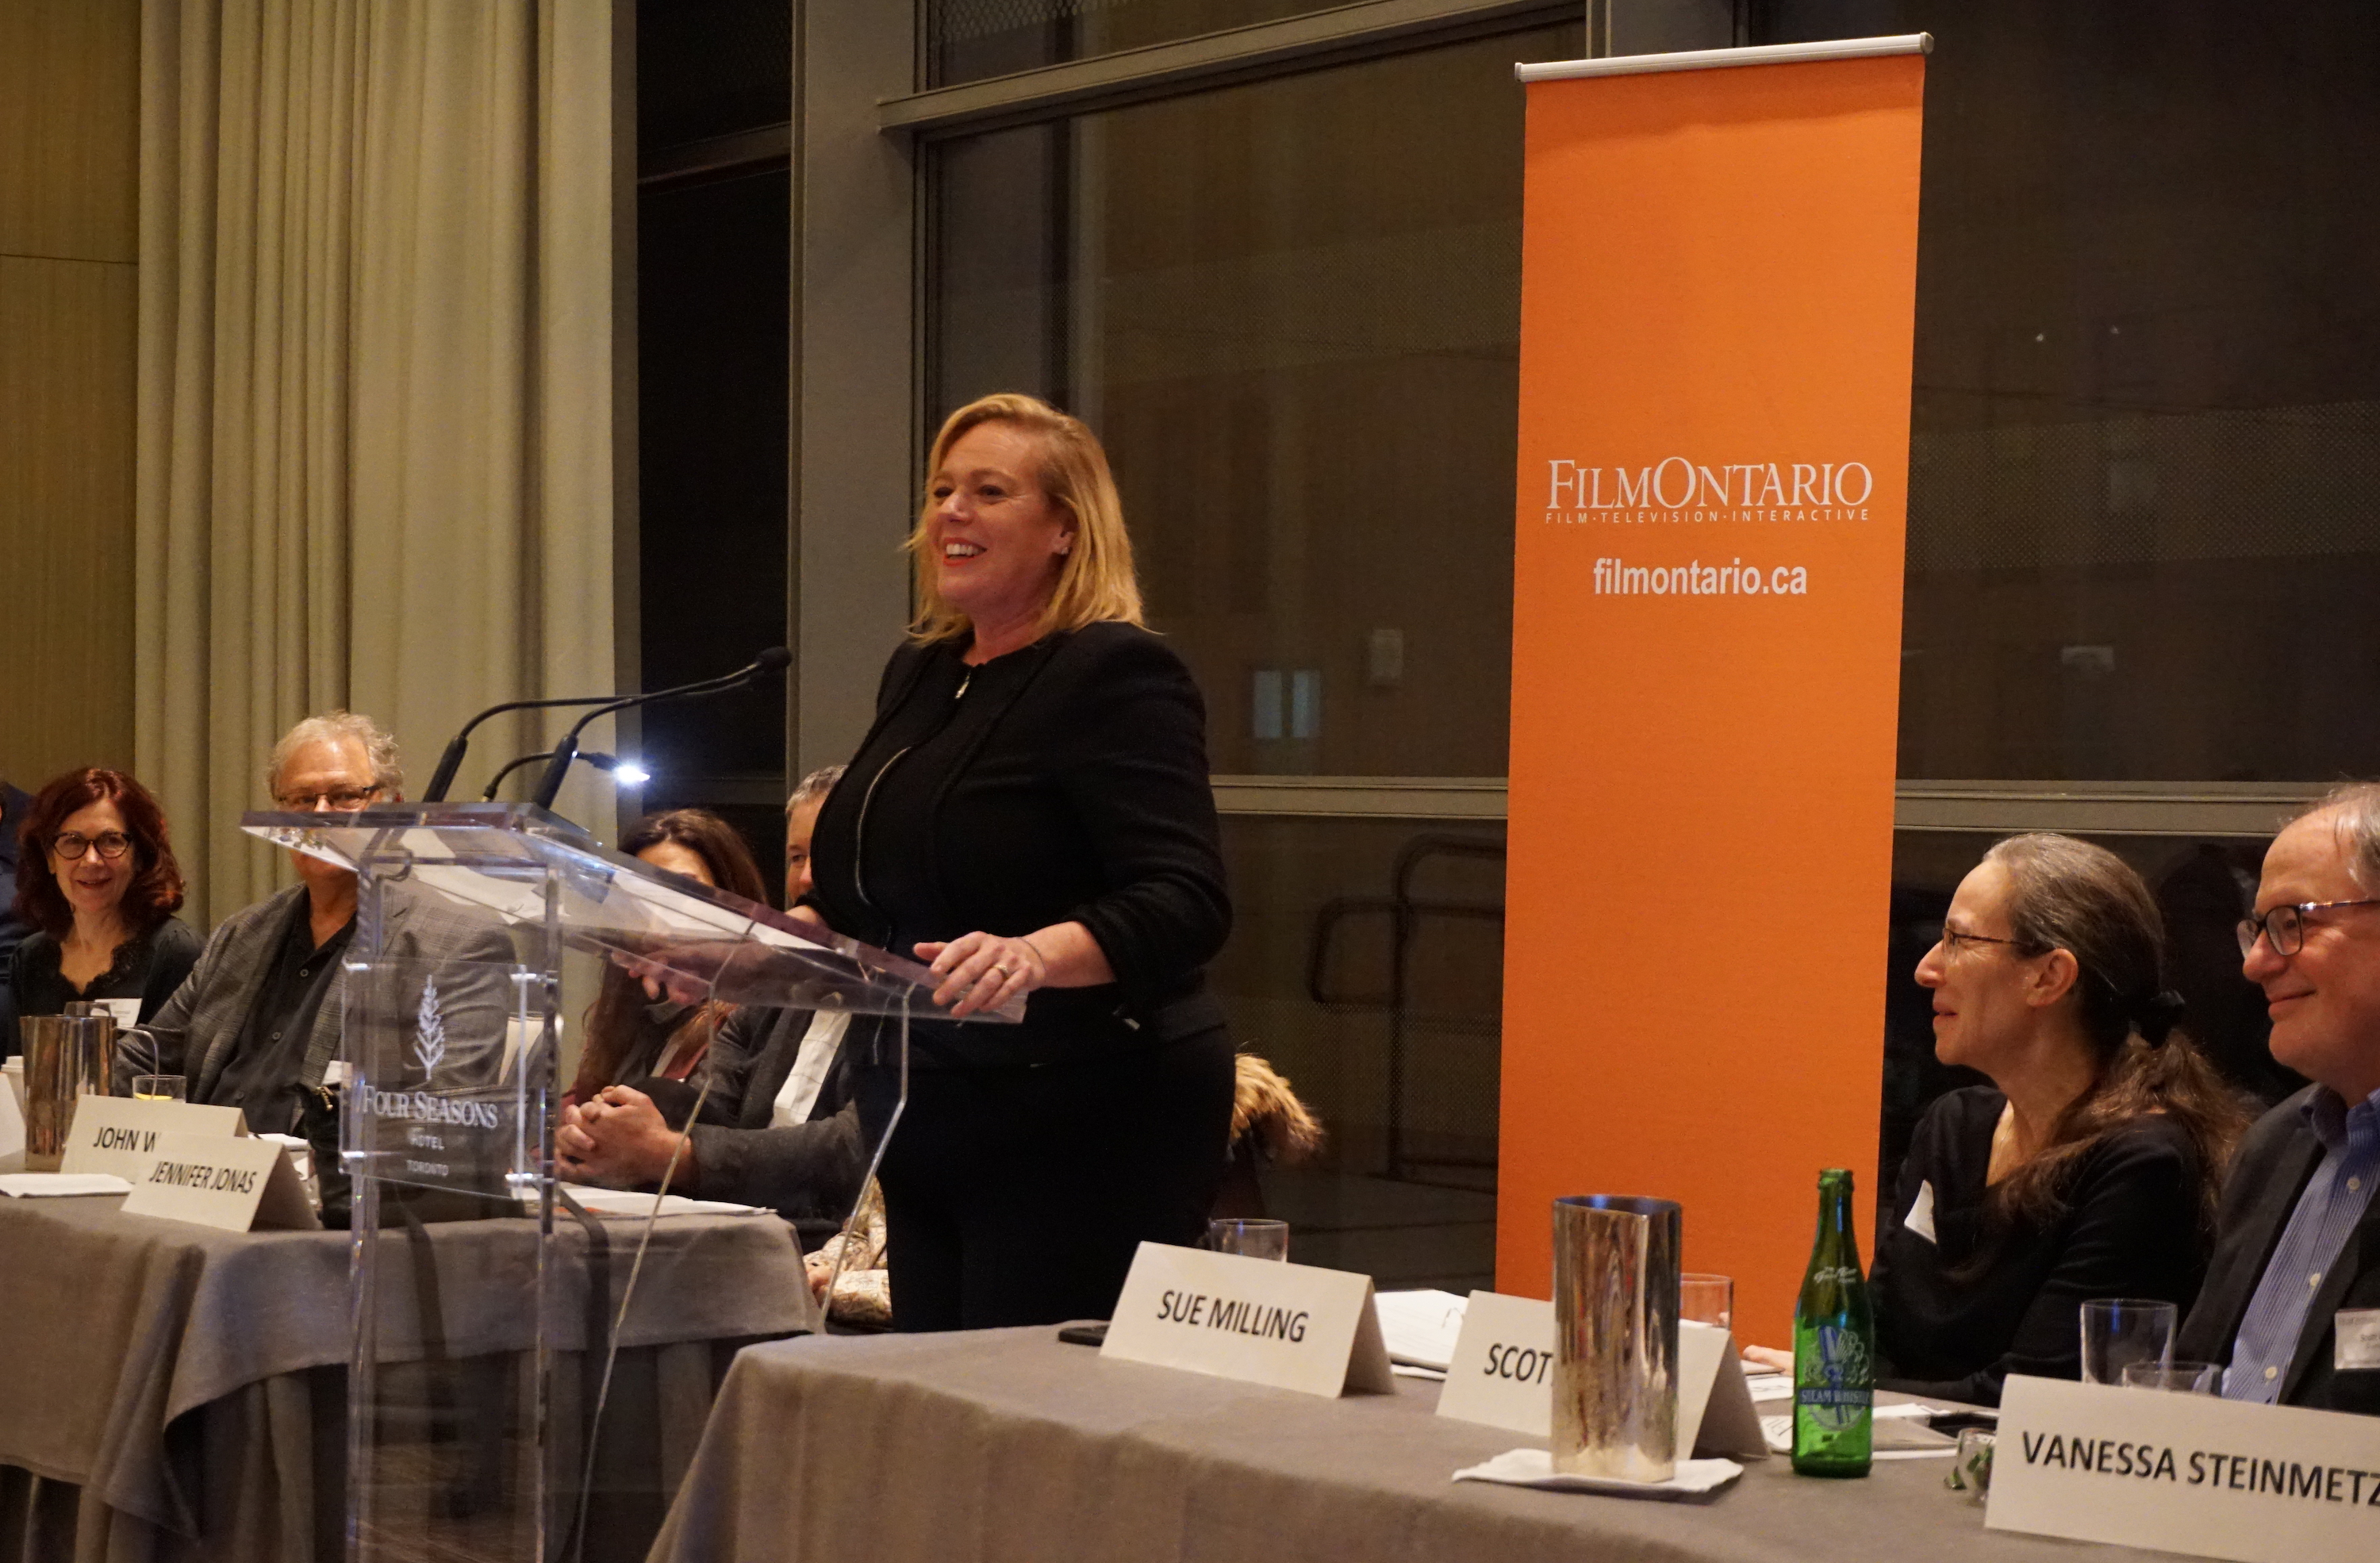 Minister MacLeod Speaks at FilmOntario Annual General Meeting